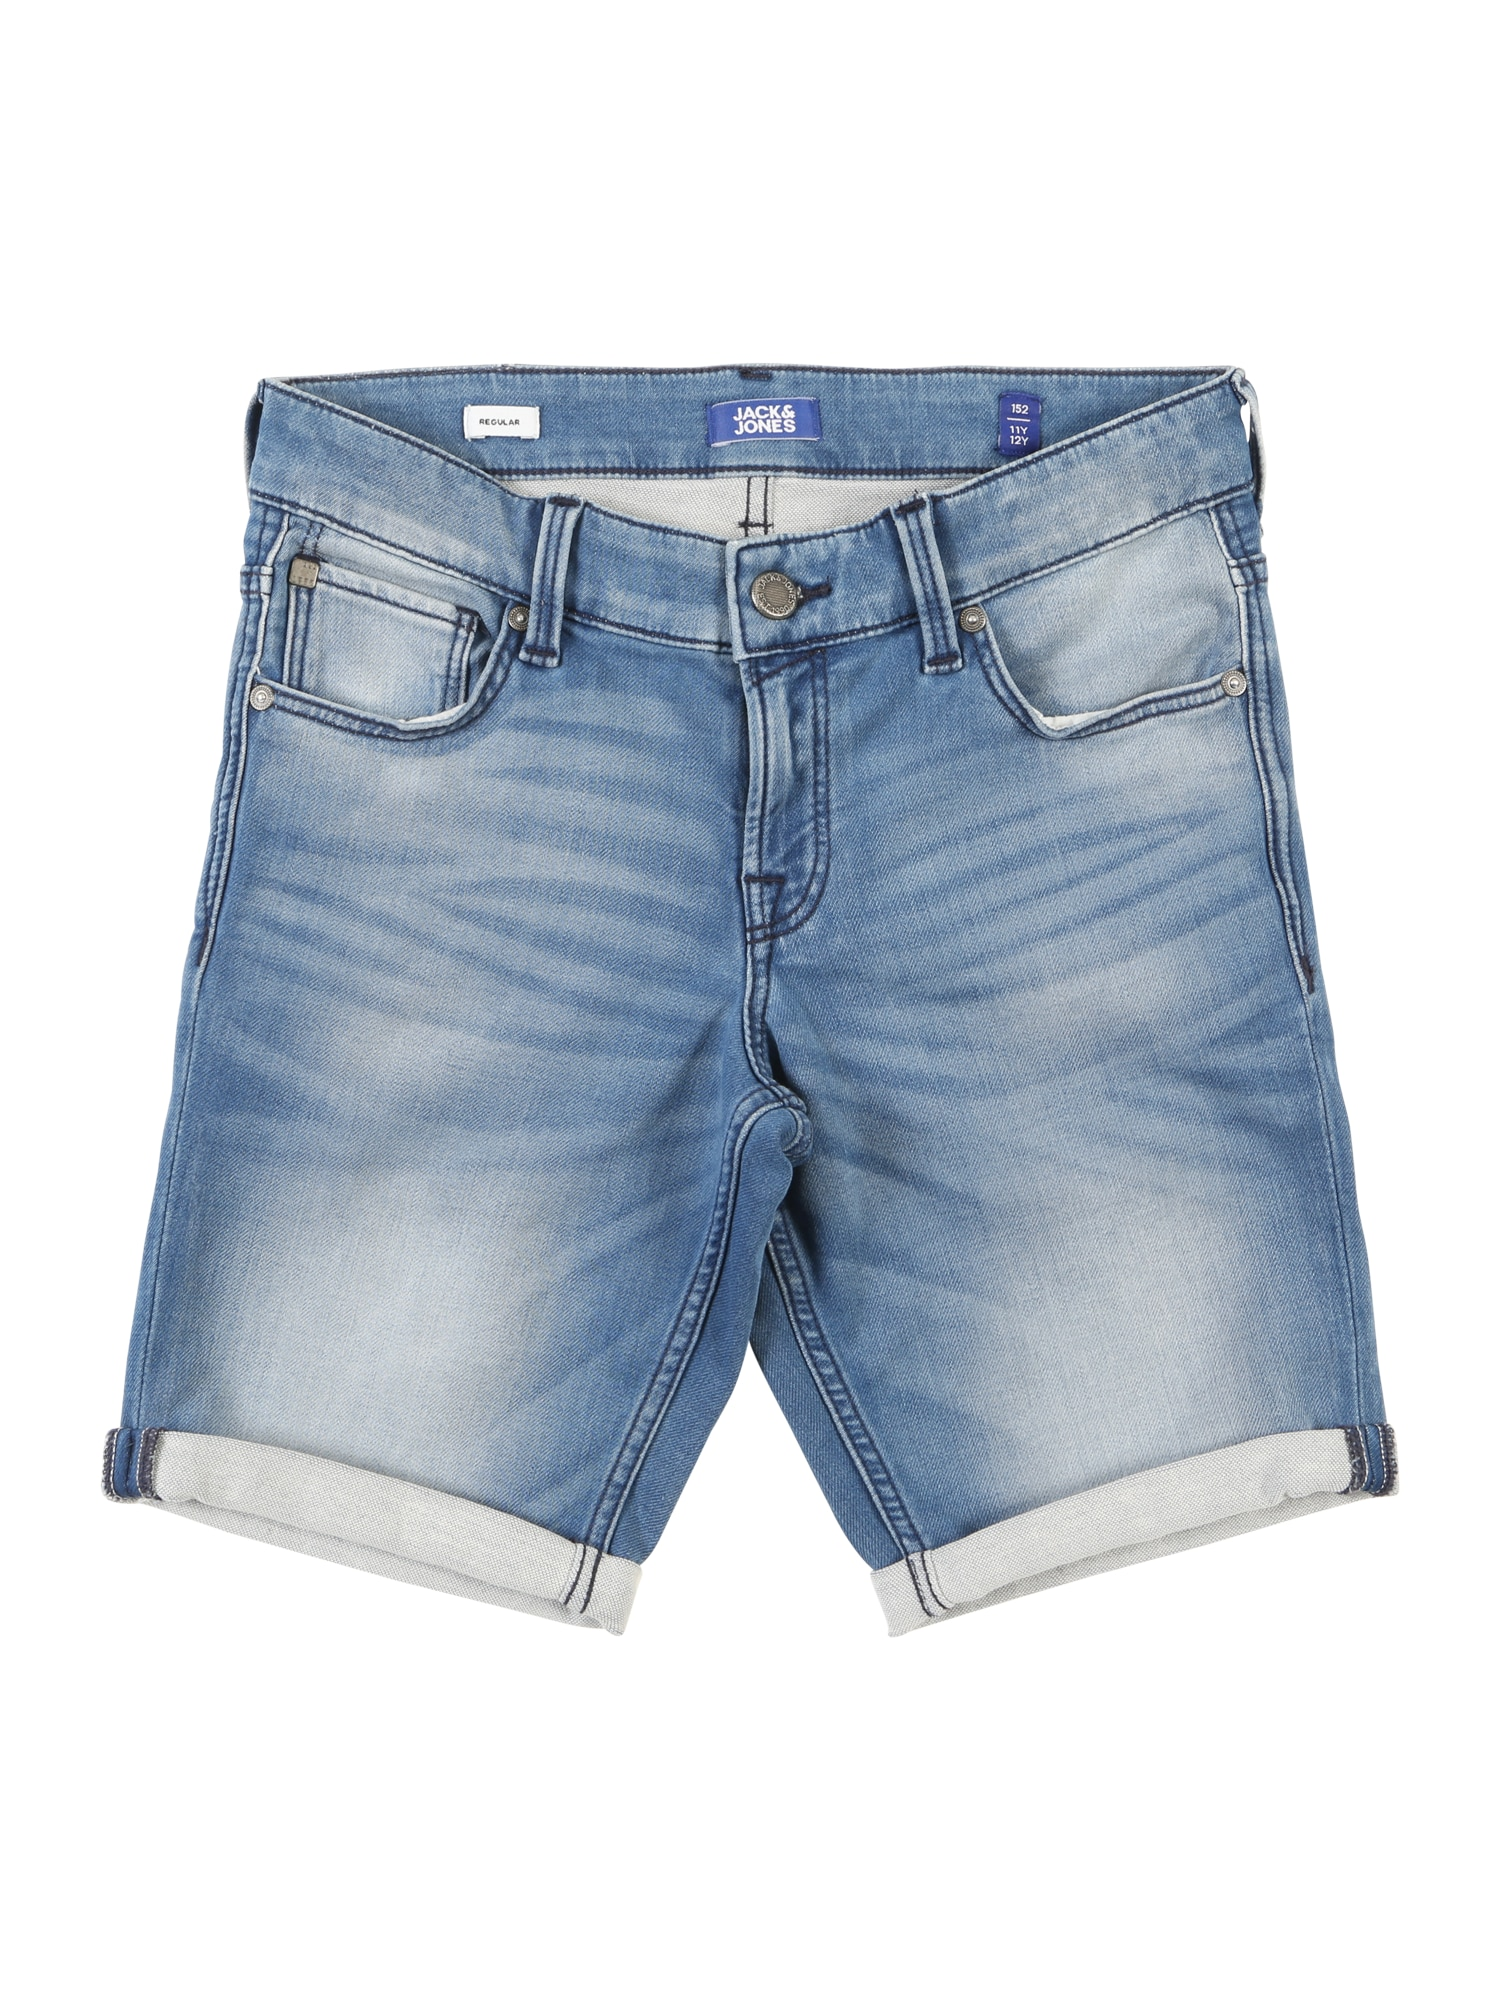 Džíny JJIRICK JJICON SHORTS GE 851 I.K. JR modrá Jack & Jones Junior